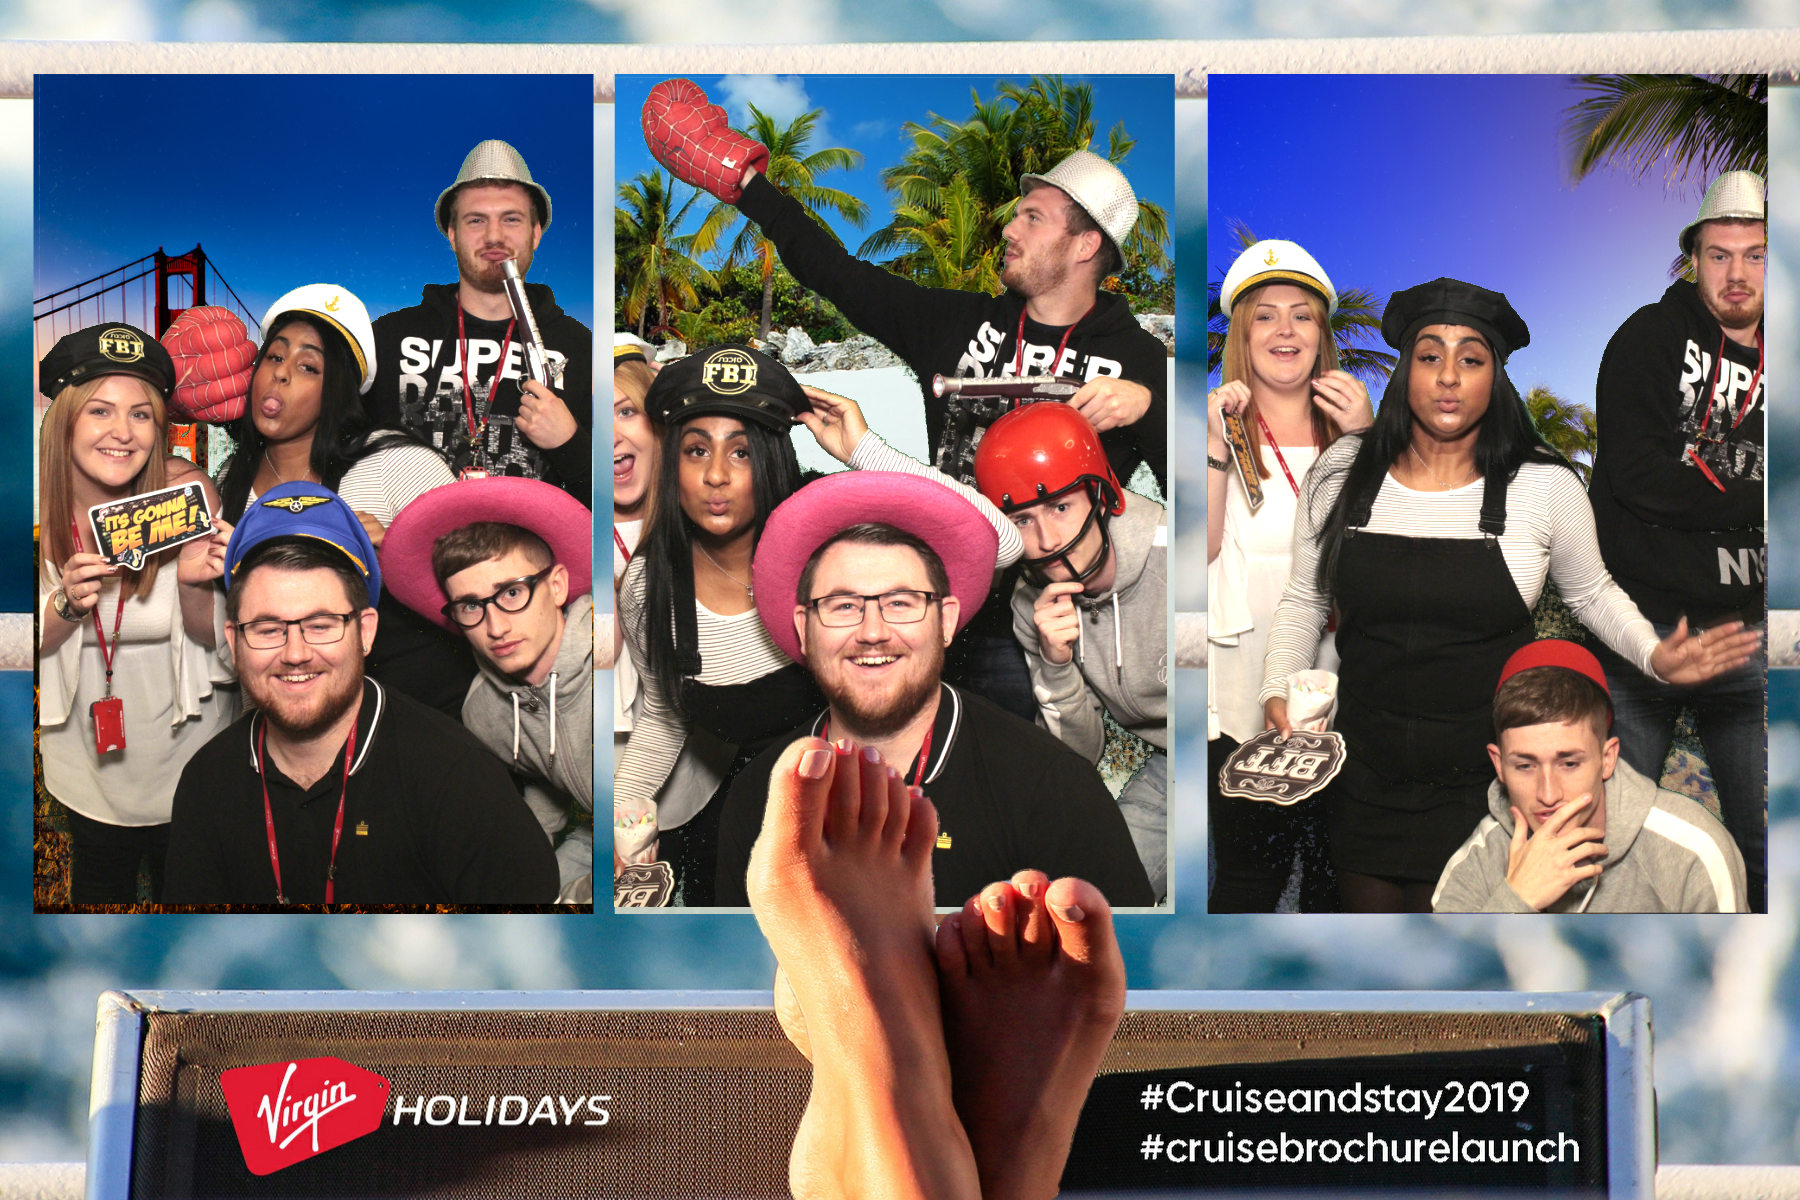 Virgin Holidays | View more photos from the event at gallery.myphotoboothexperience.co.uk/u/MyPhotoBoothExperienceLtd/Virgin-Holidays-0